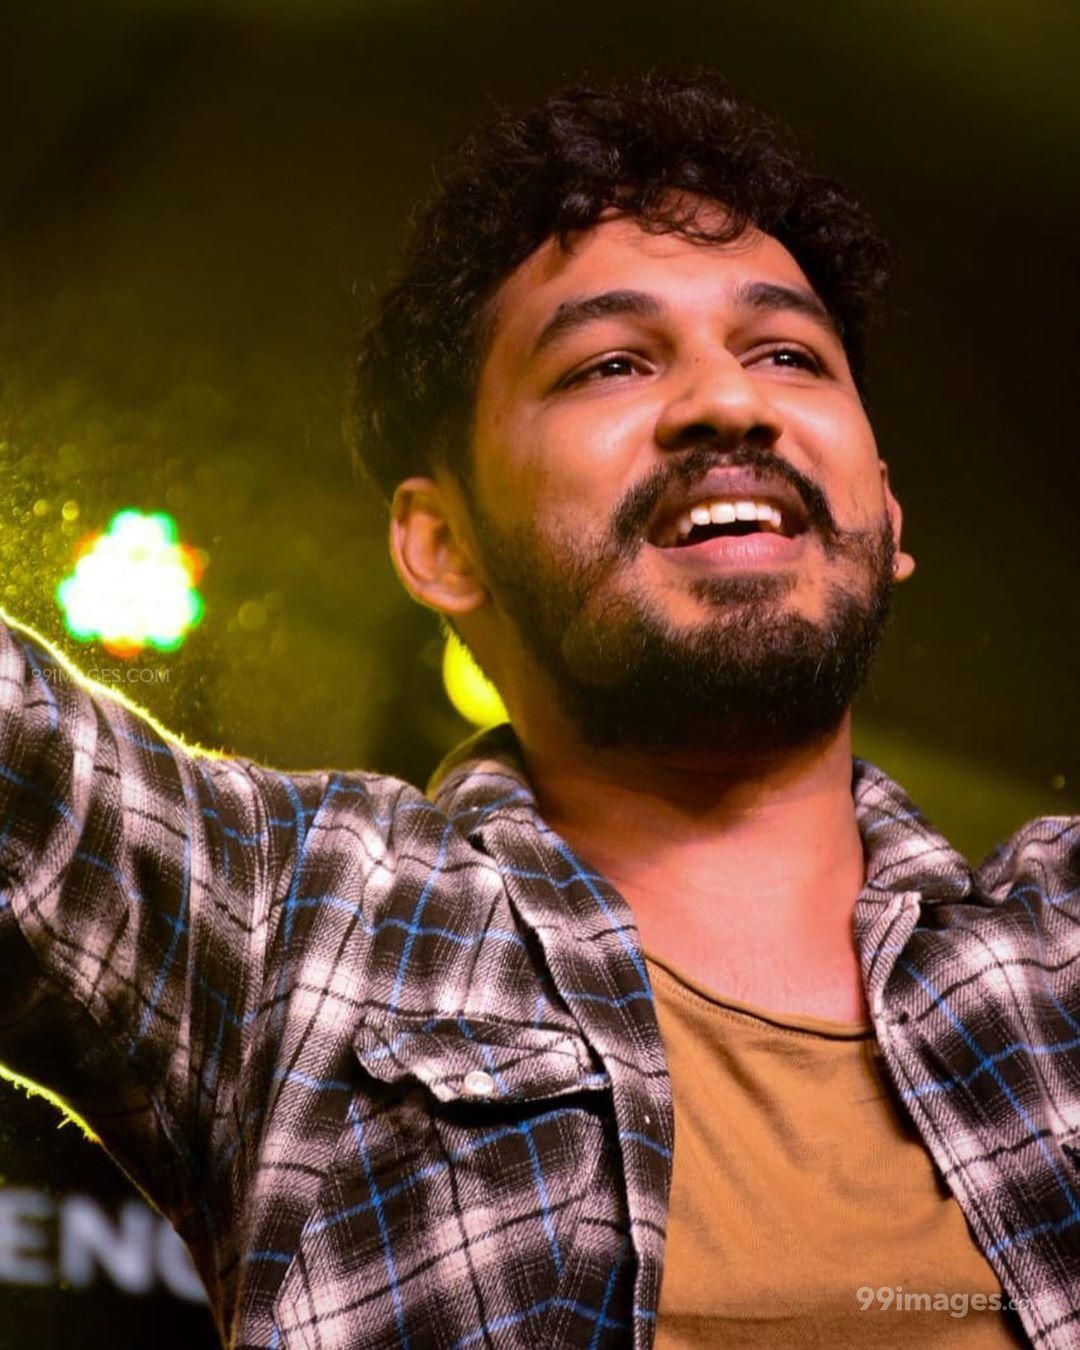 65 Hiphop Tamizha Hd Wallpapers Desktop Background Android Iphone 1080p 4k 1080x1350 2021